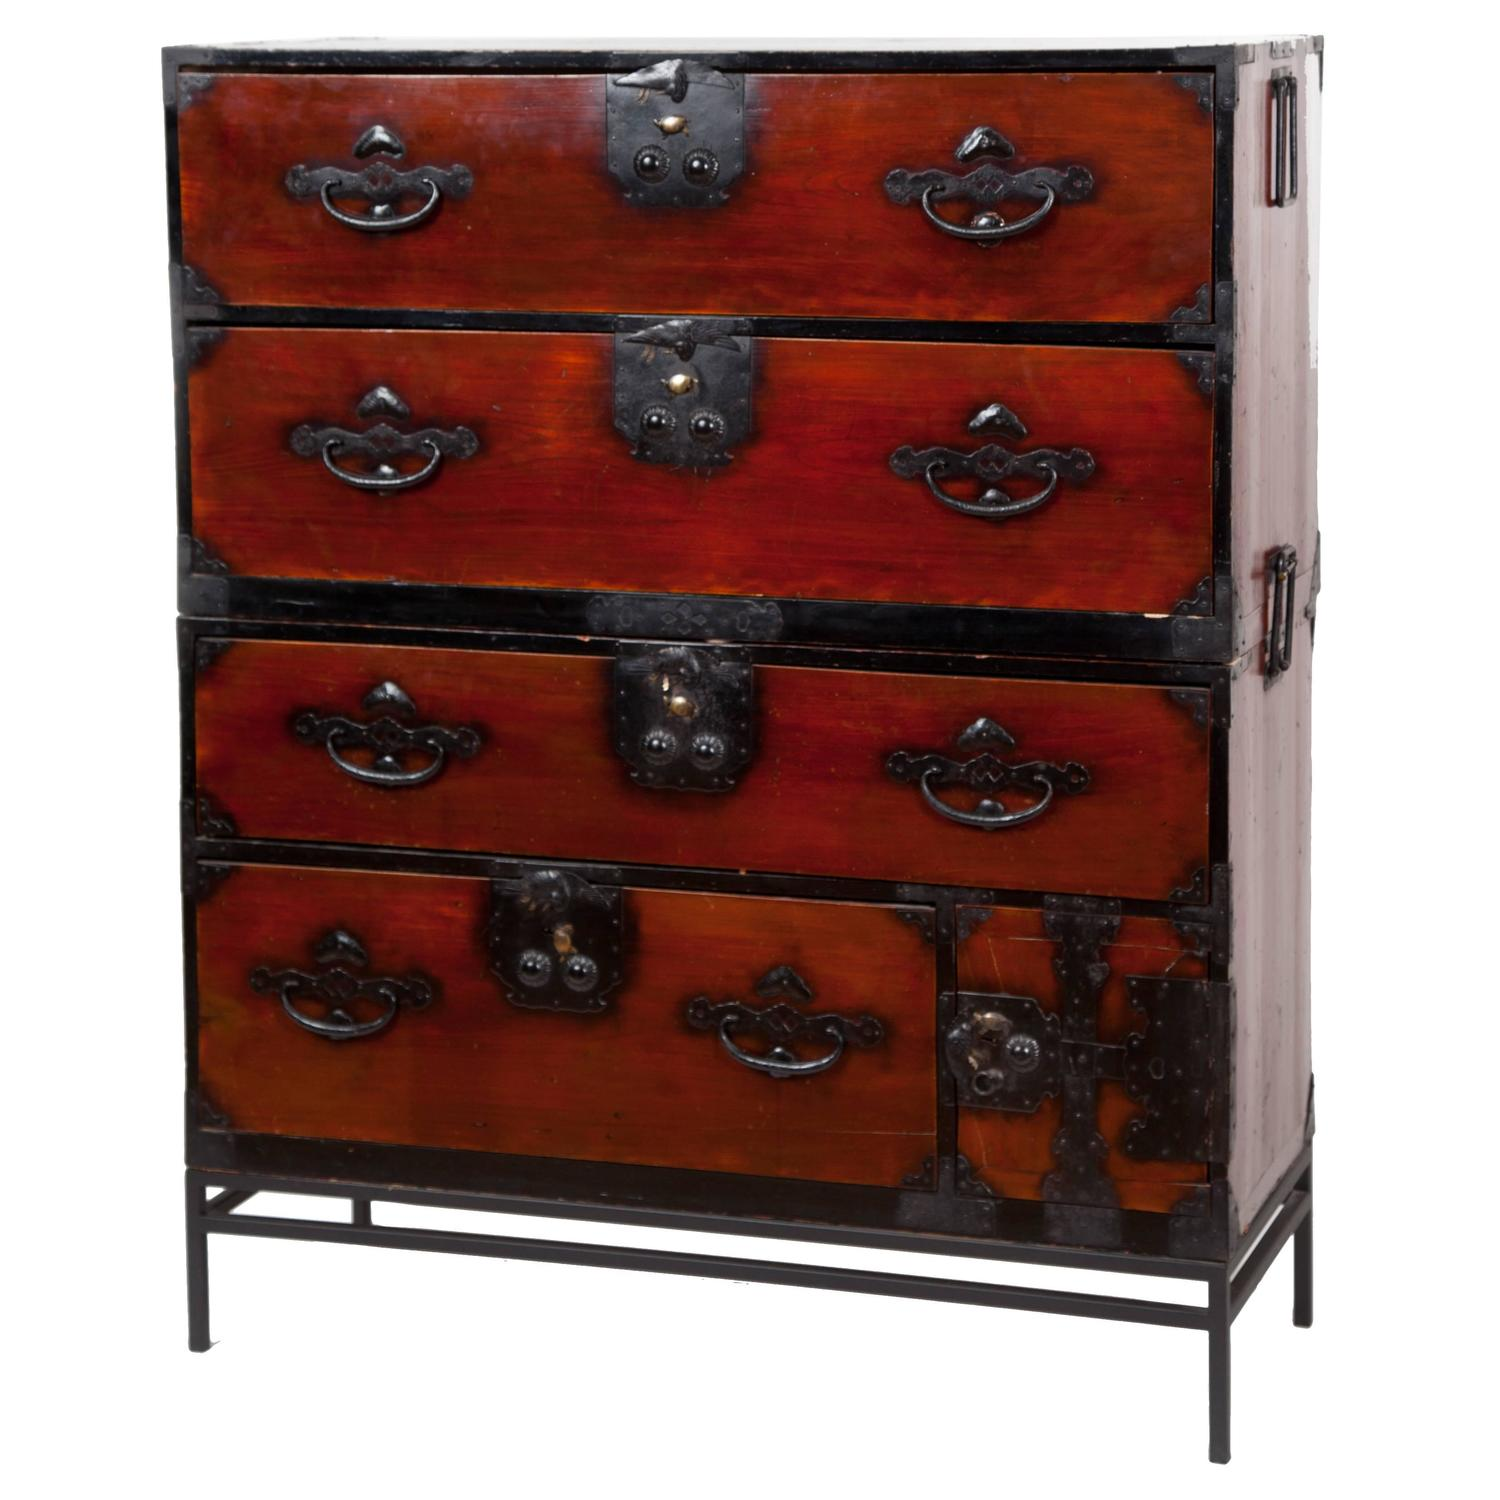 . Antique Japanese Tansu Chest For Sale at 1stdibs